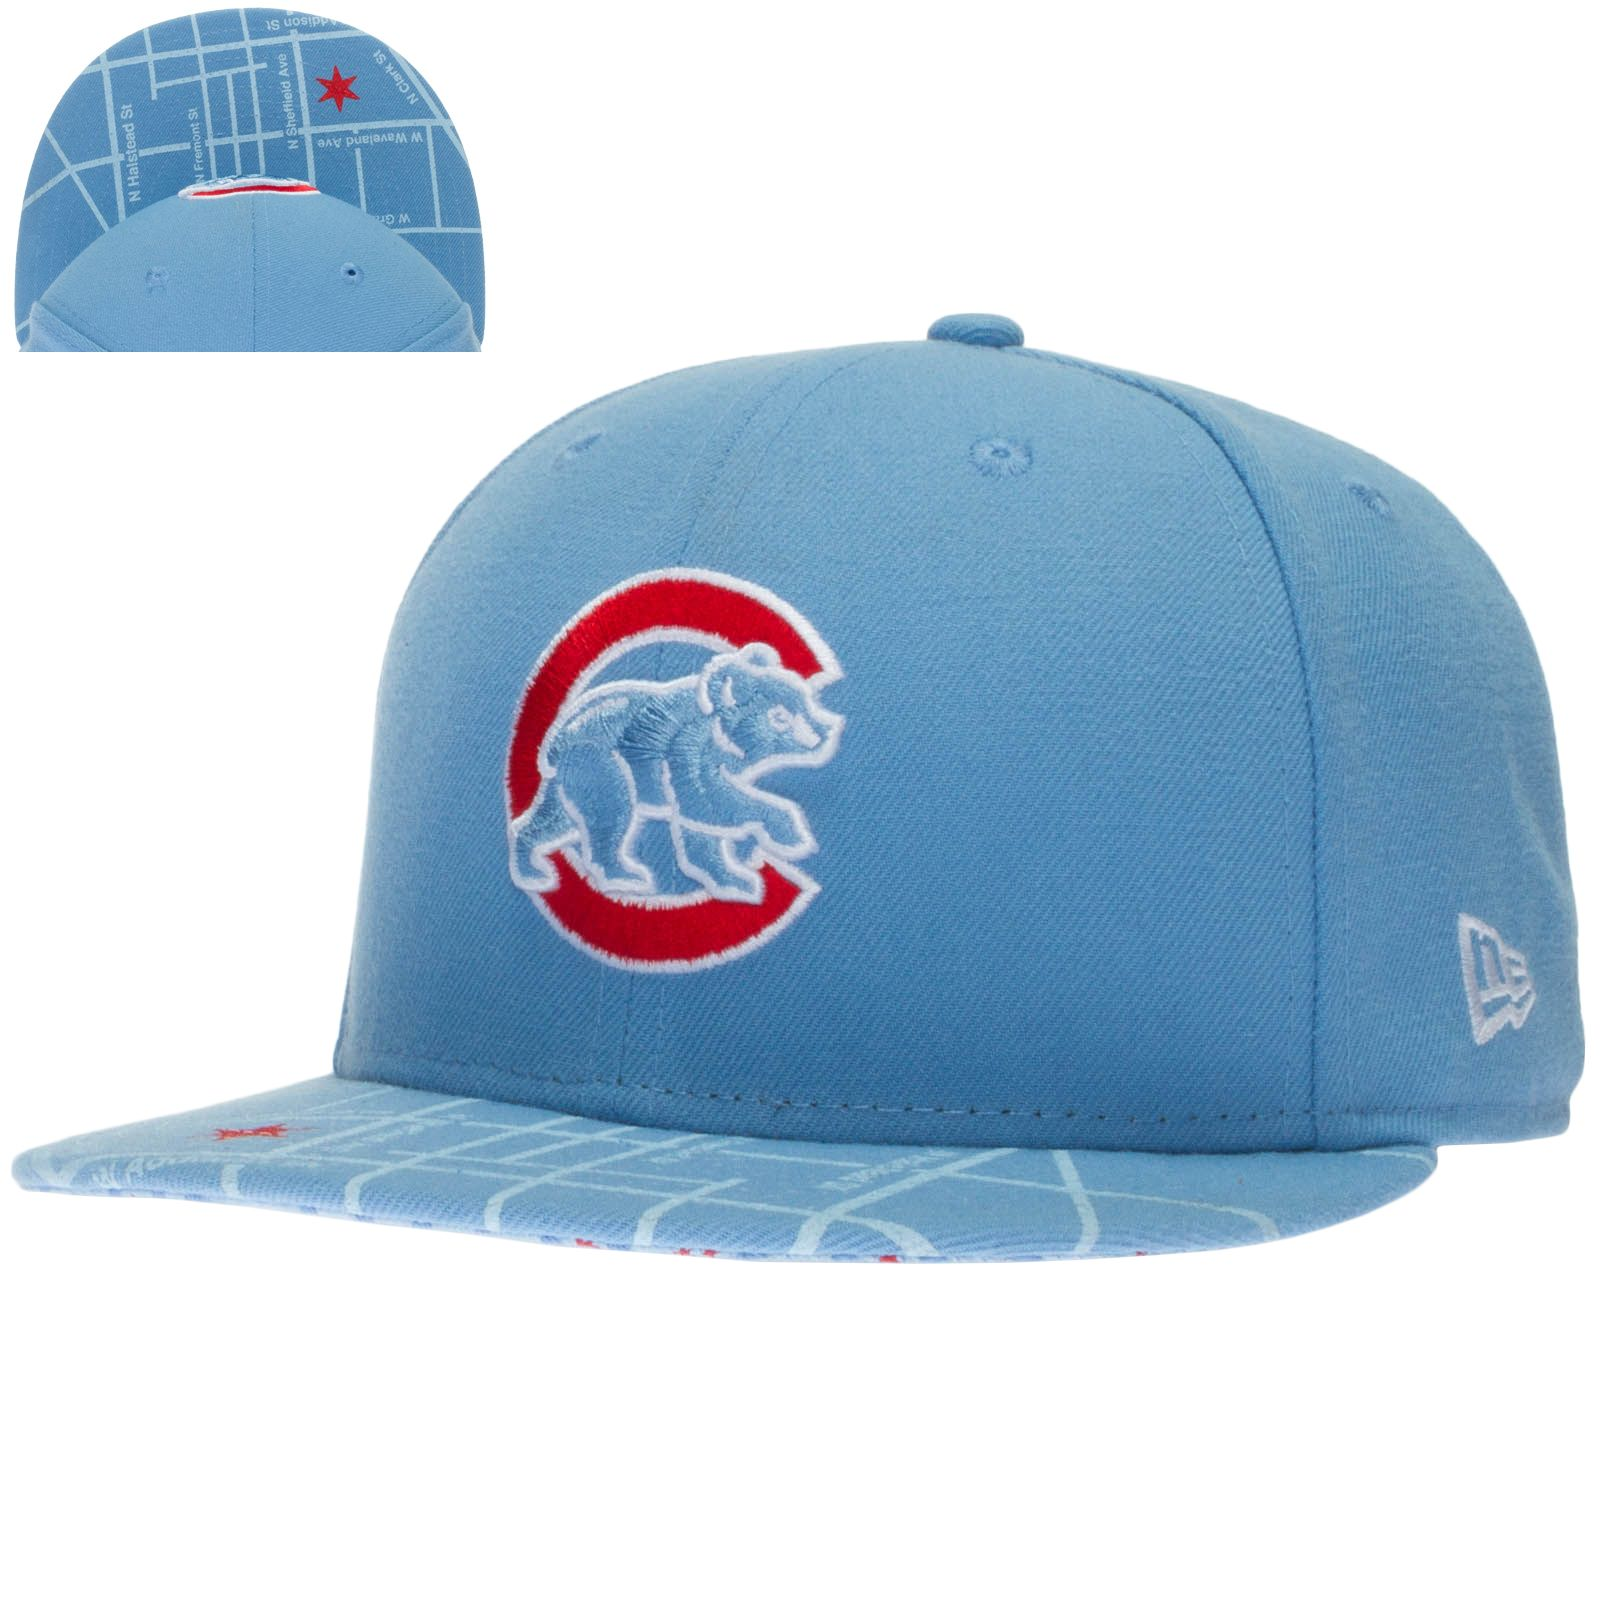 Chicago Cubs Light Blue Wrigley Field Field Map Bill Snapback Hat by New Era   Chicago  ChicagoCubs  Cubs a7bb41a62505